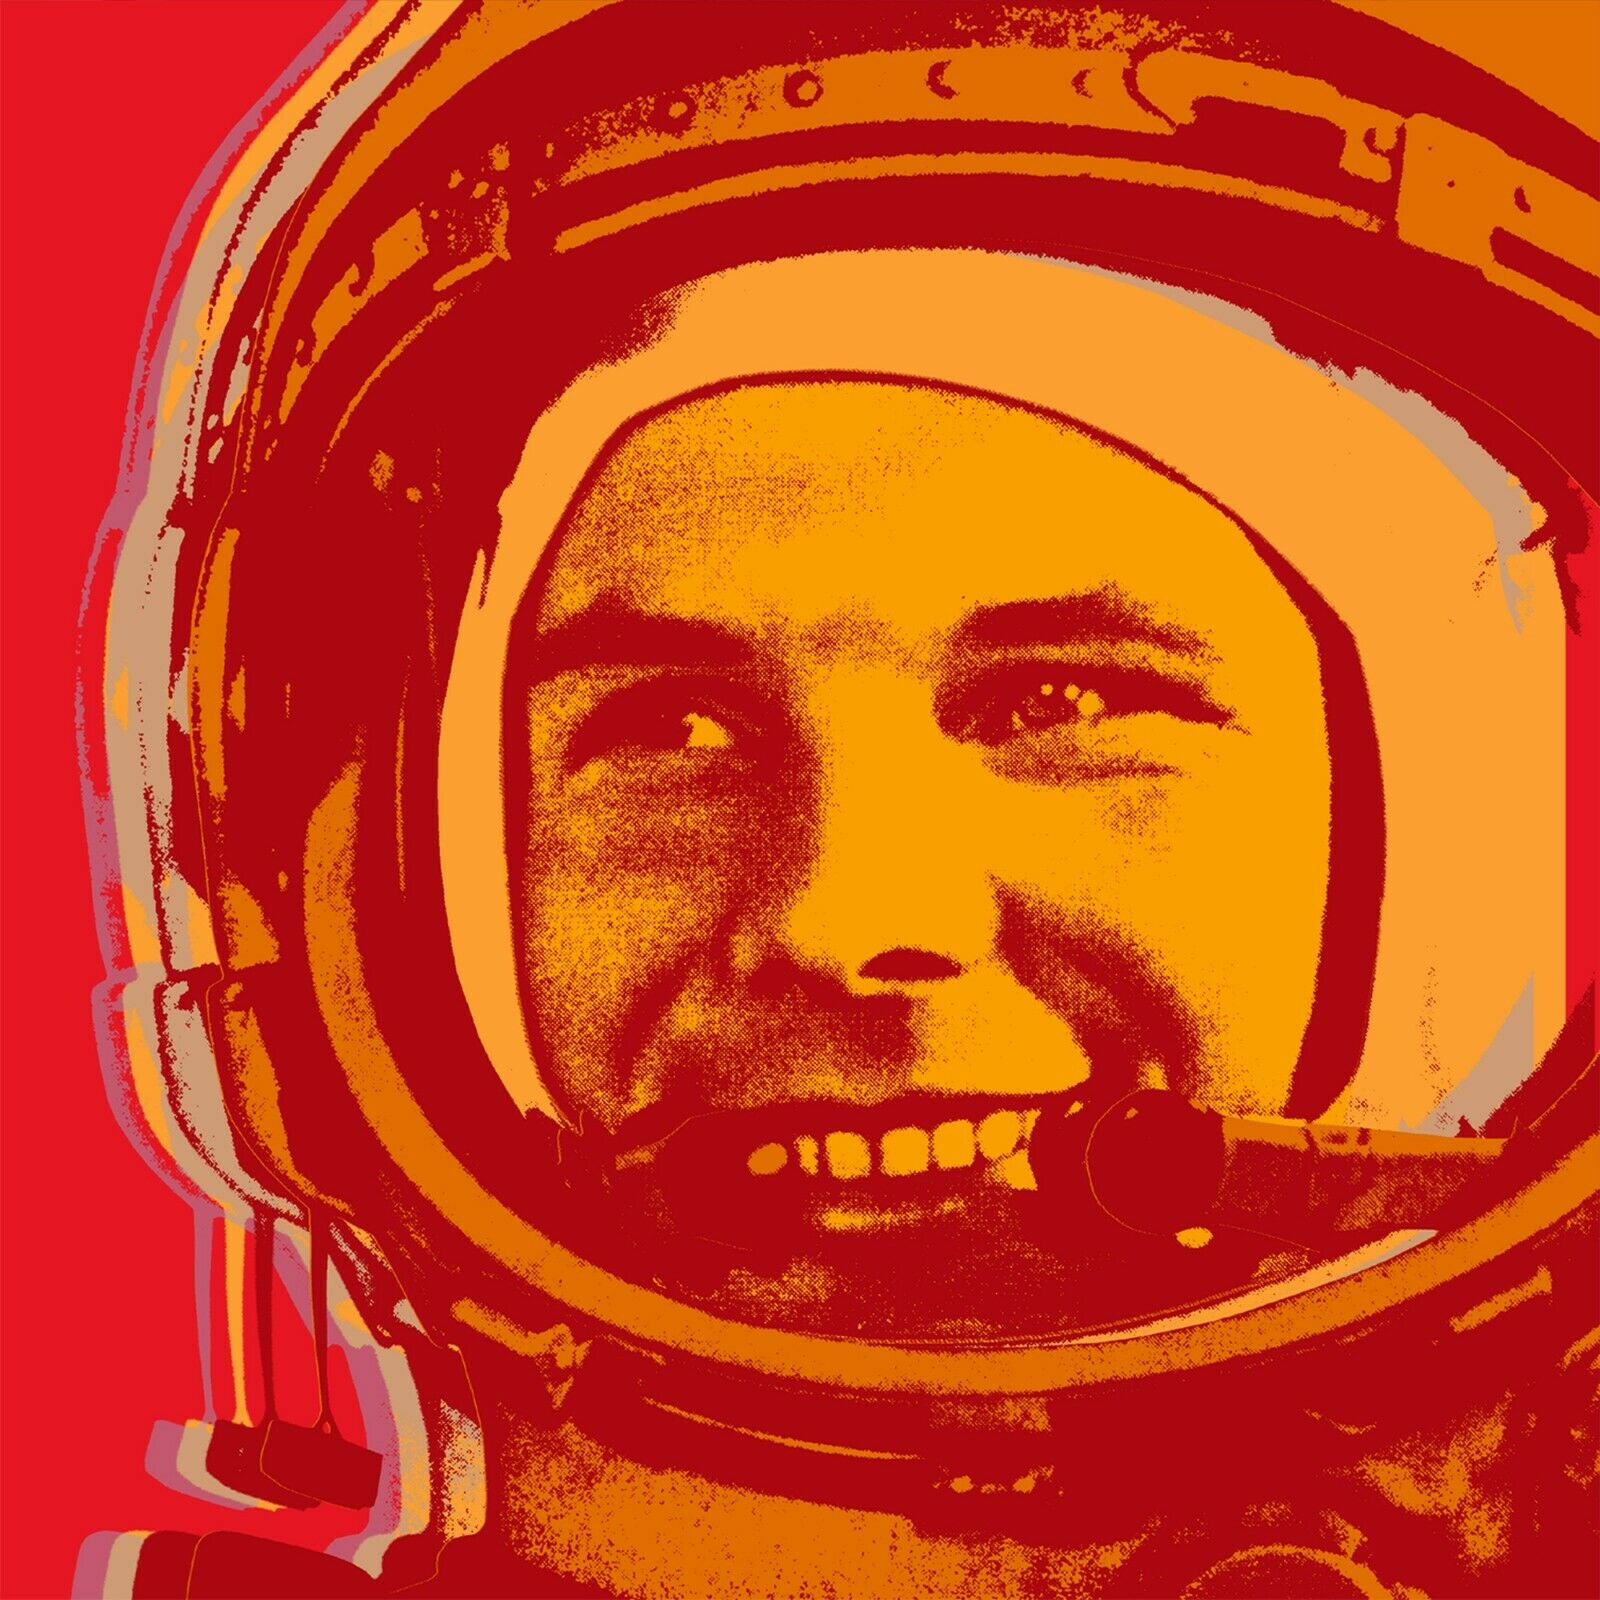 Yuri Gagarin Pop kunst drucken - 17 1 2  x 17 1 2  - on canvas